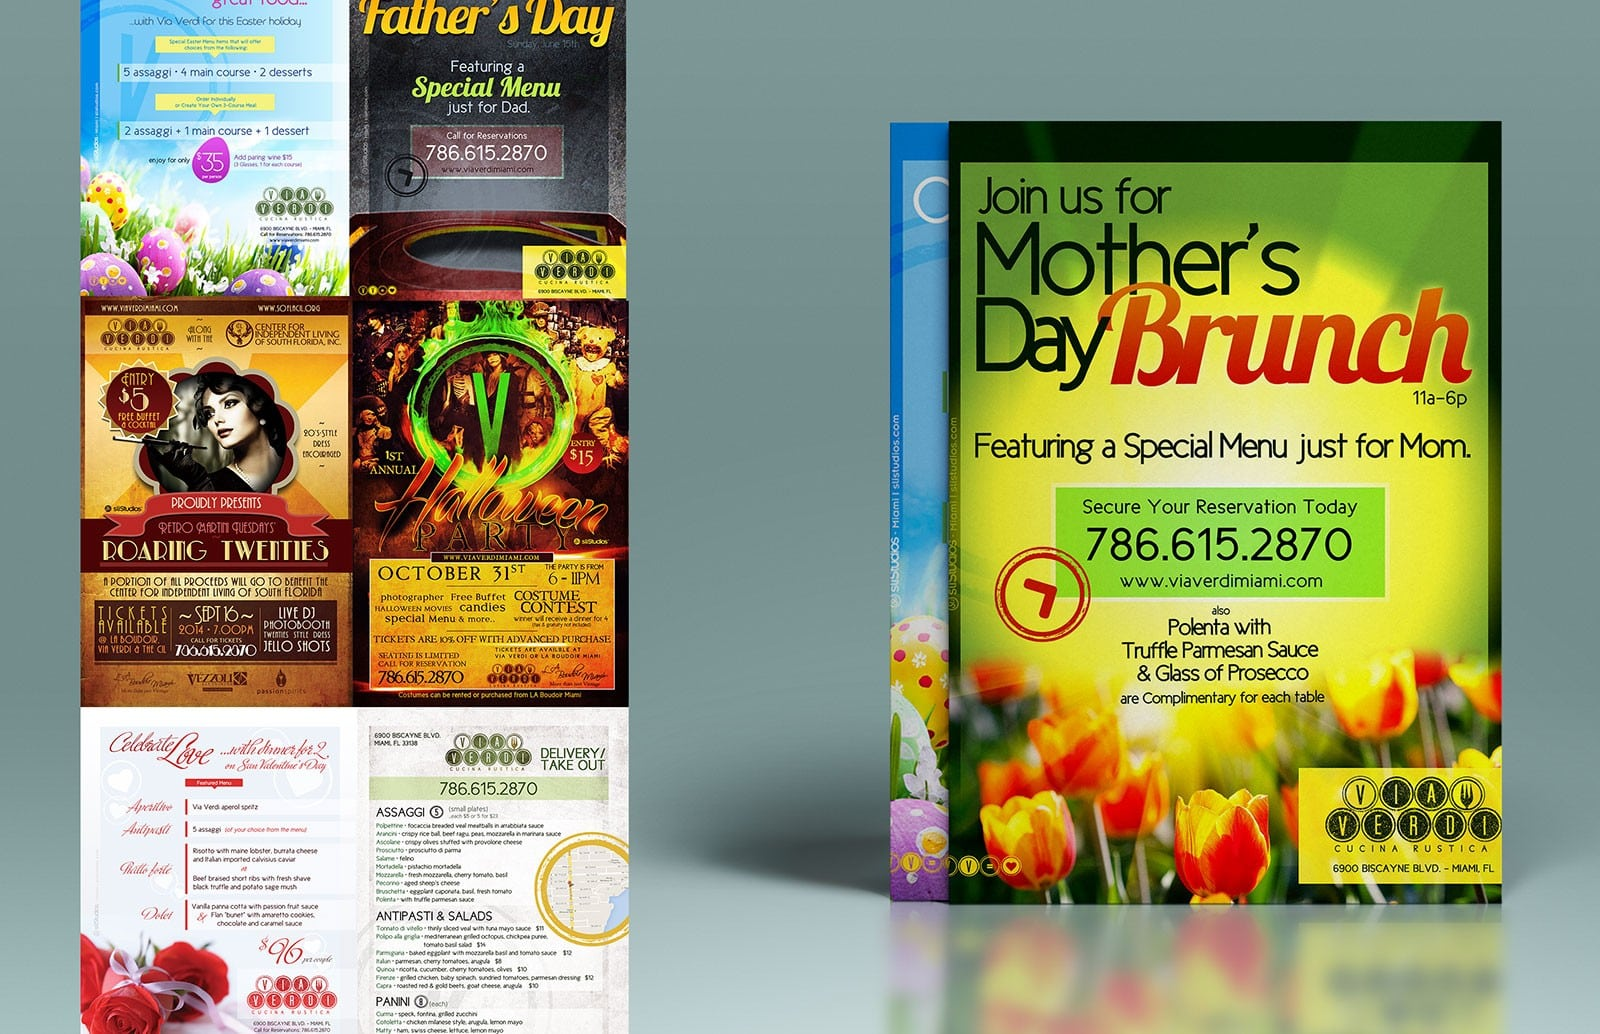 Via Verdi Cucina Rustica -Flyer and Direct mail design